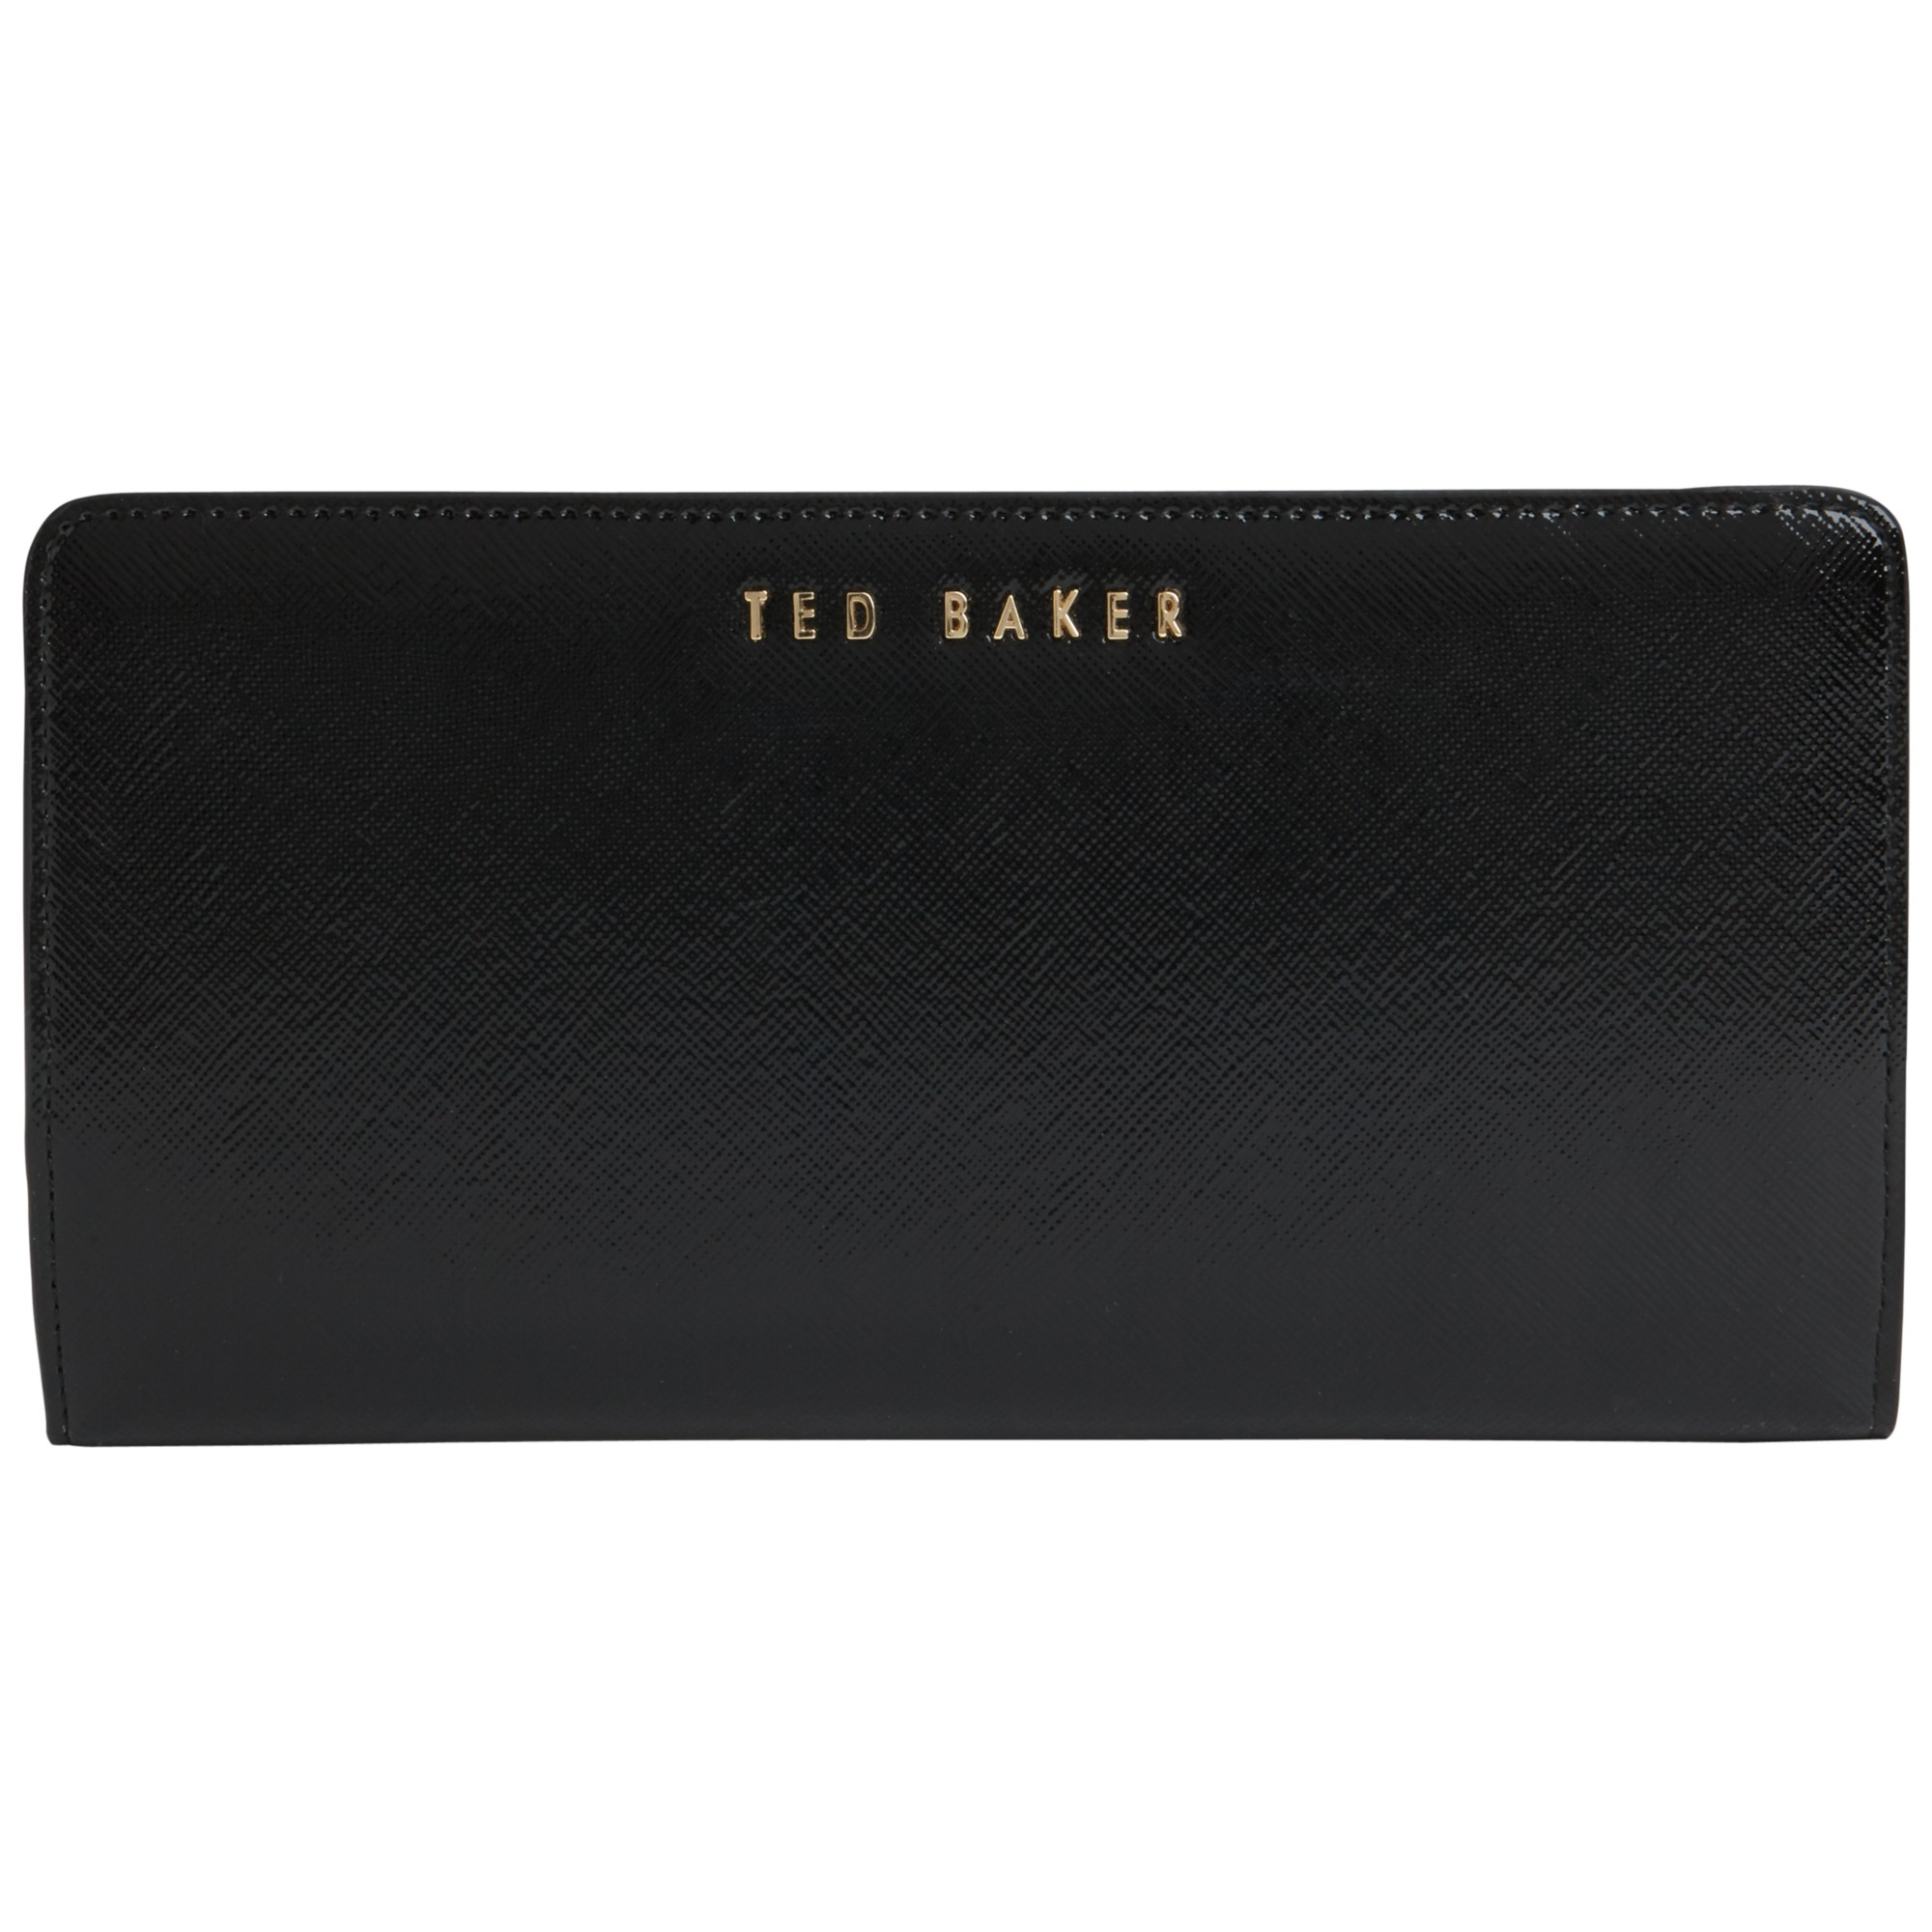 c4fcaa4f38e2 Ted Baker Alaniy Crosshatch Matinee Purse in Black - Lyst